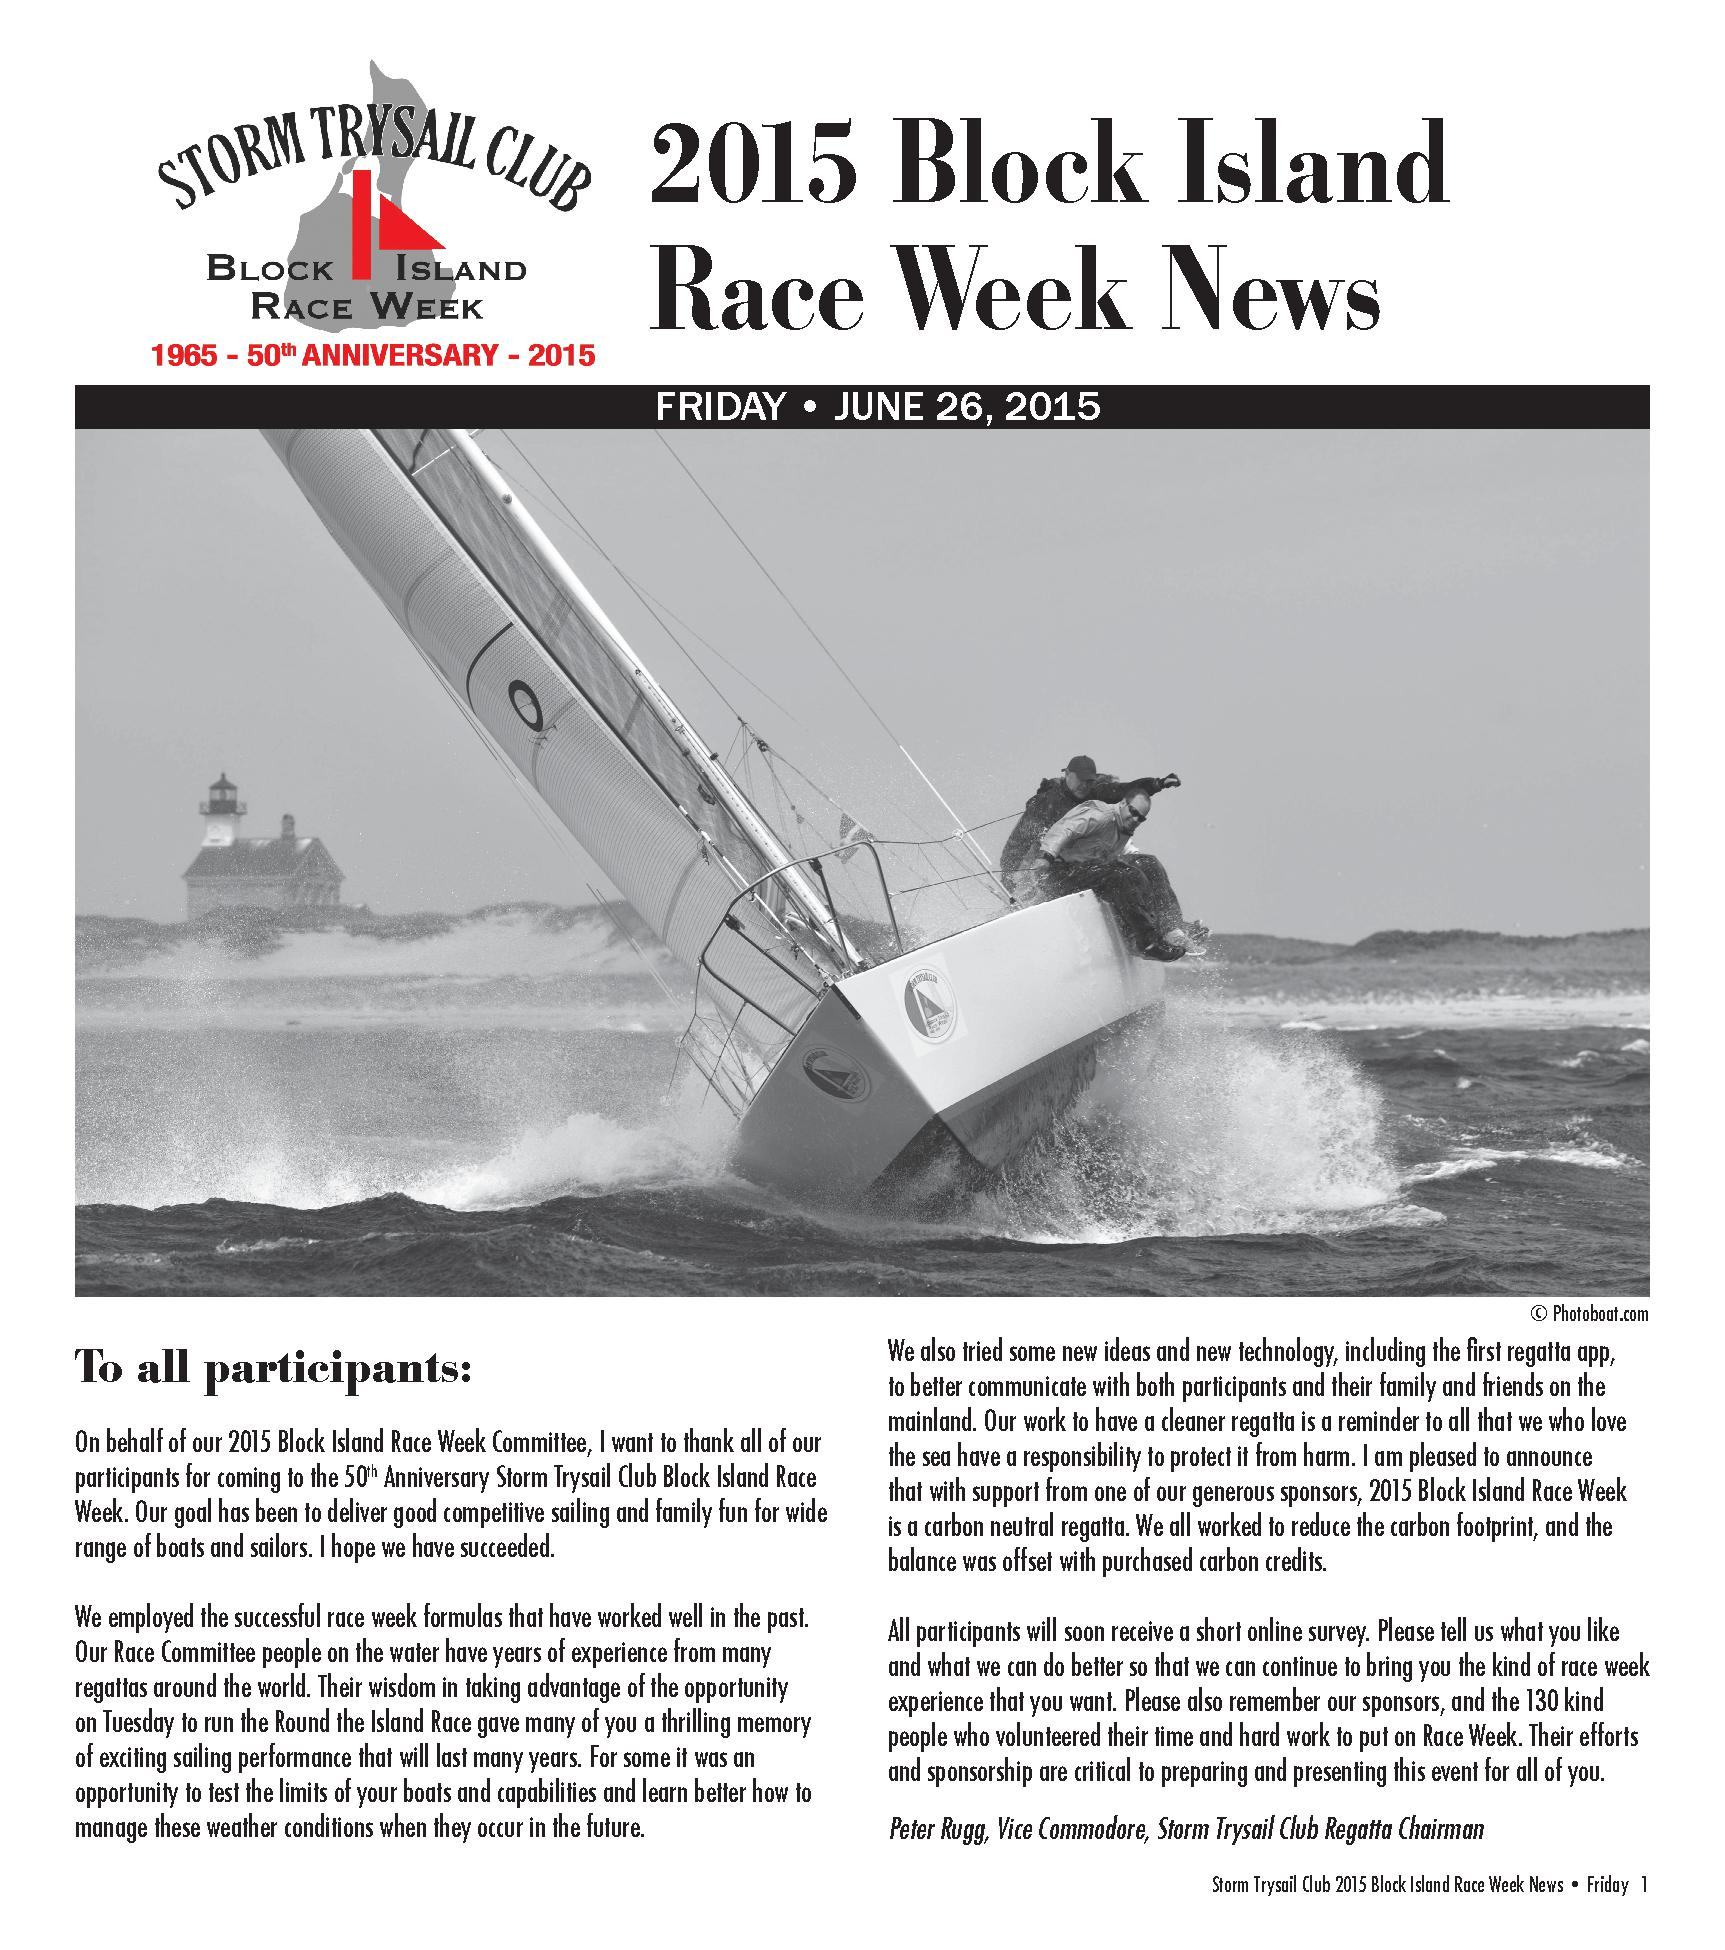 Block Island Race Week News 2015